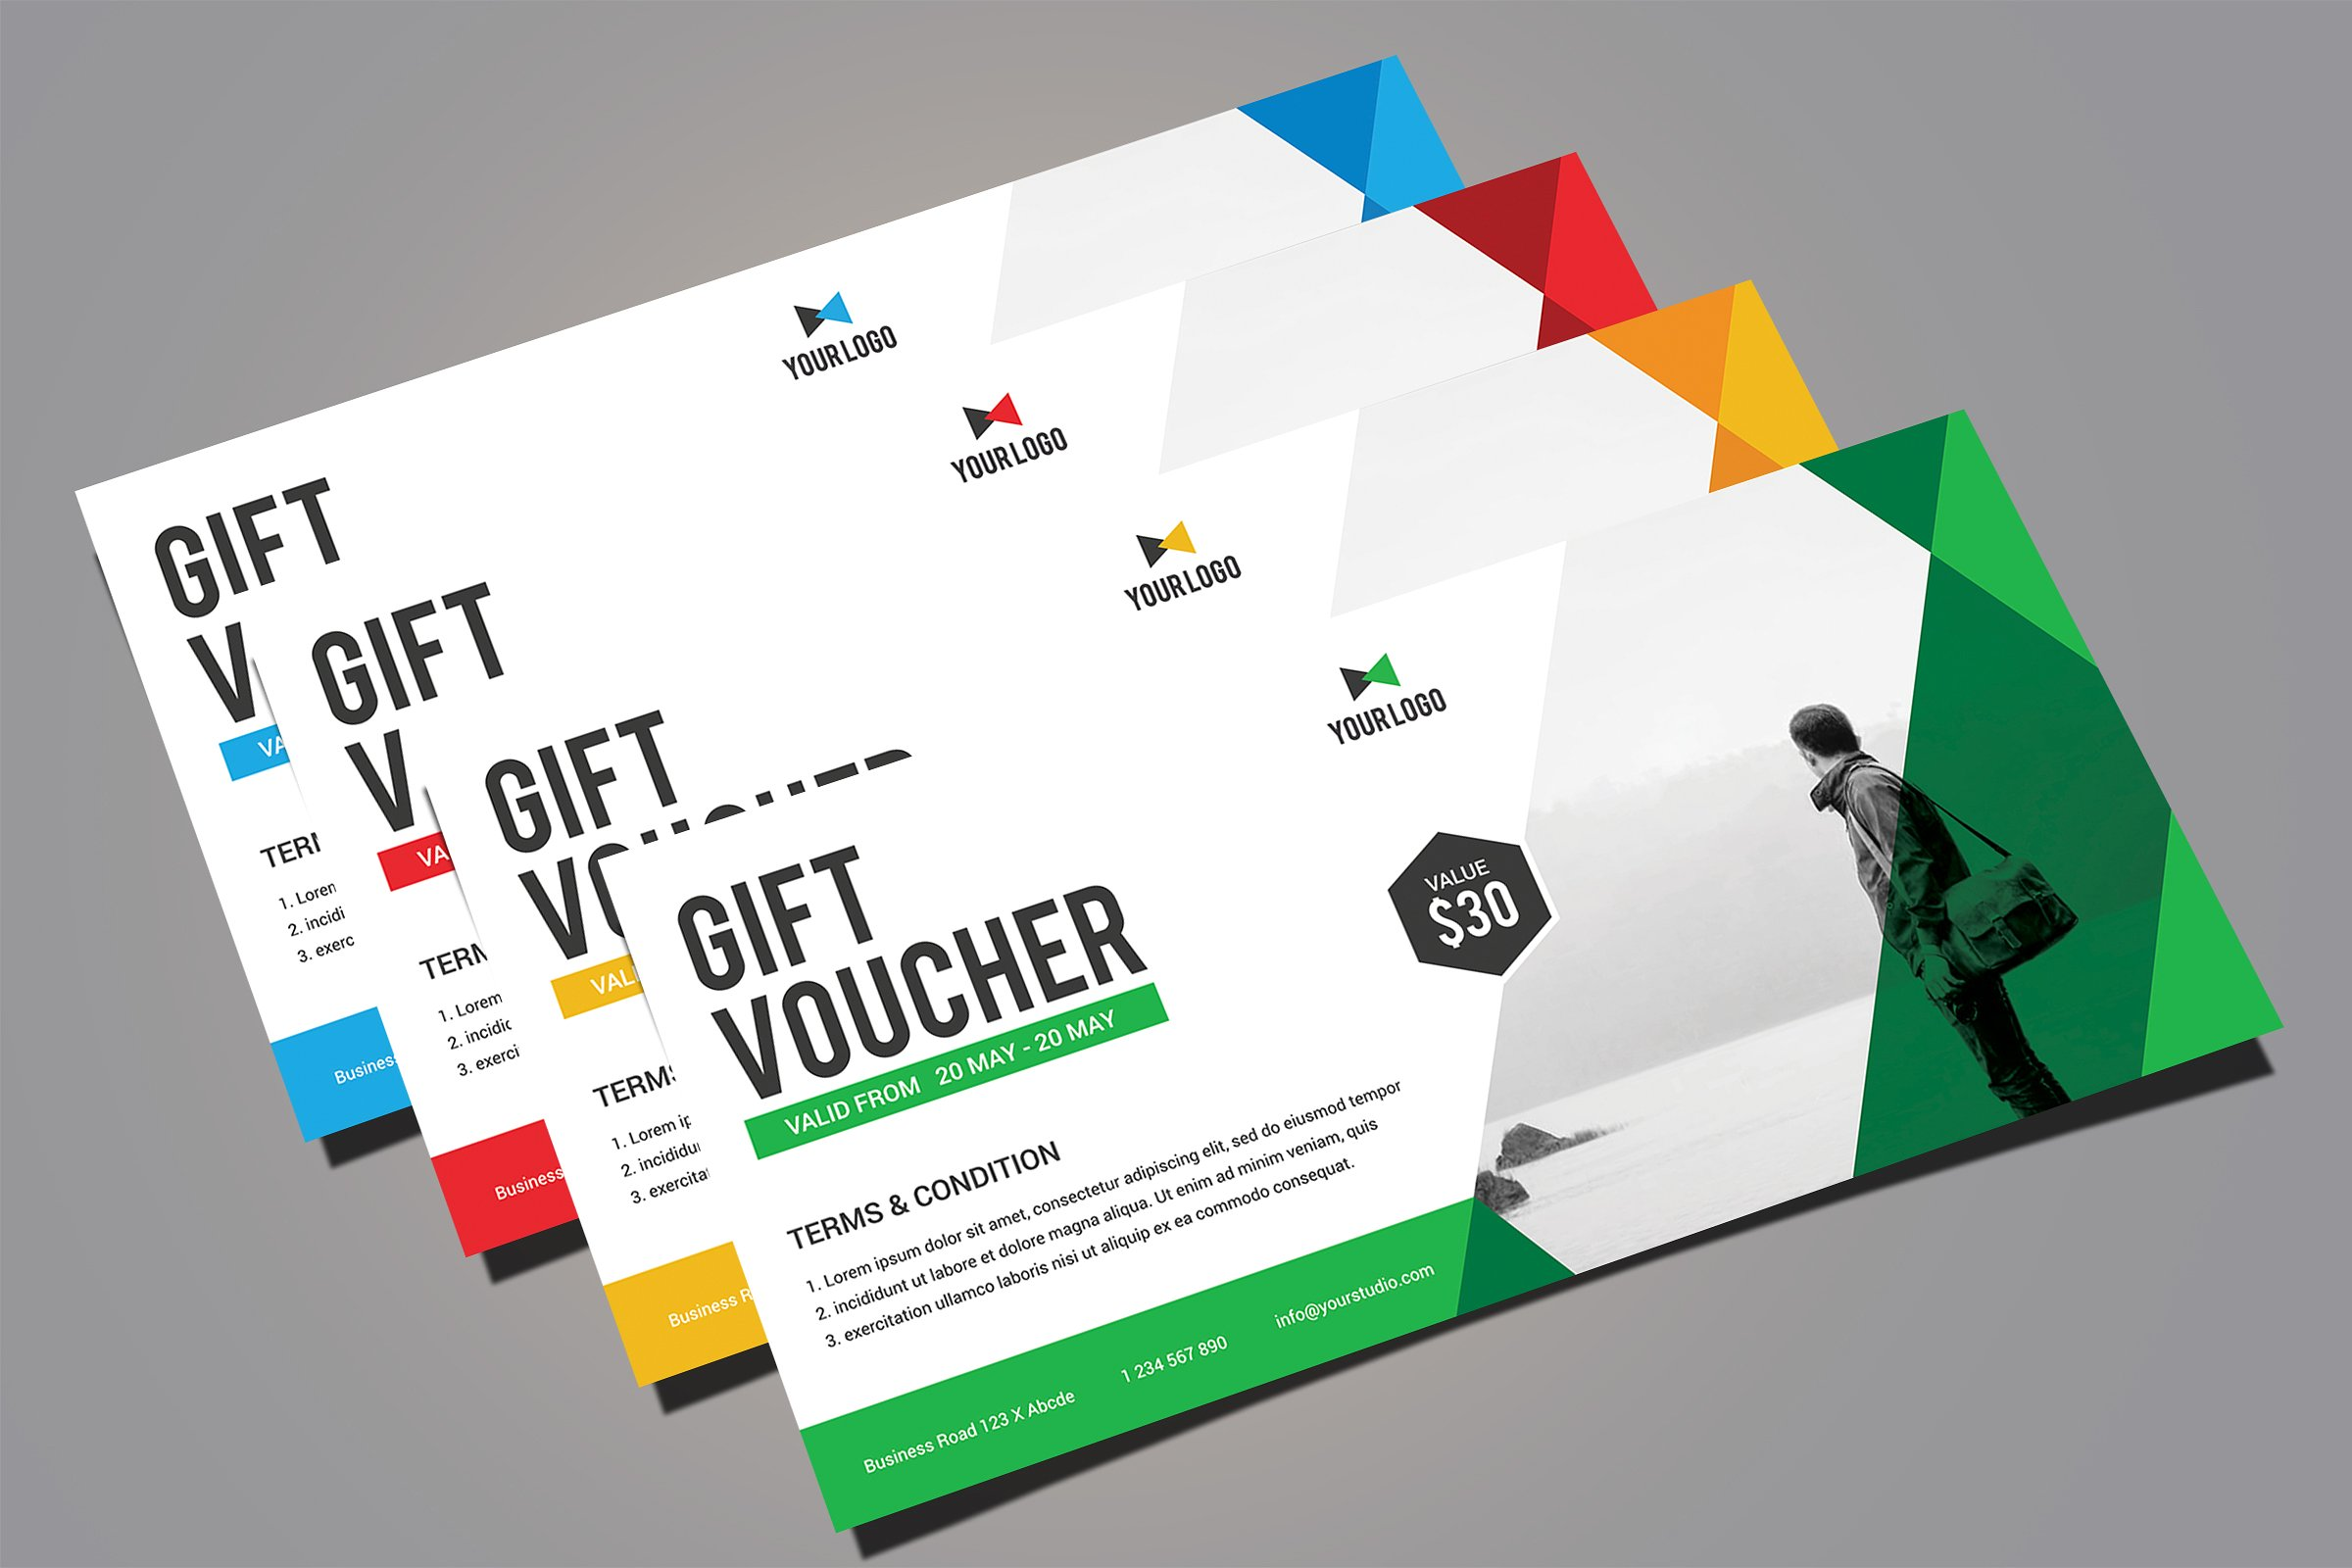 free fashion gift voucher design template mock up psd